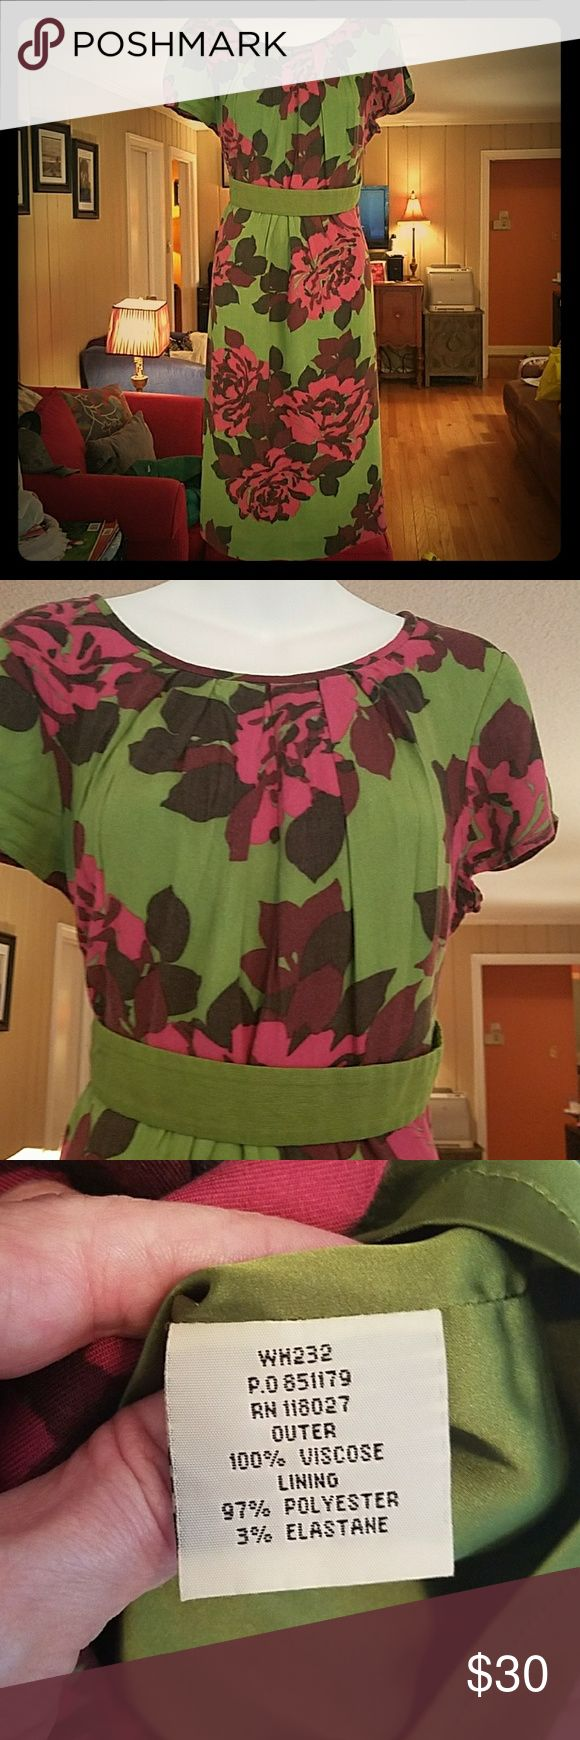 Boden Dress 12L Vibrant green, with pink & maroon accents, fully lined, EUC, smoke free home Boden  Dresses Midi